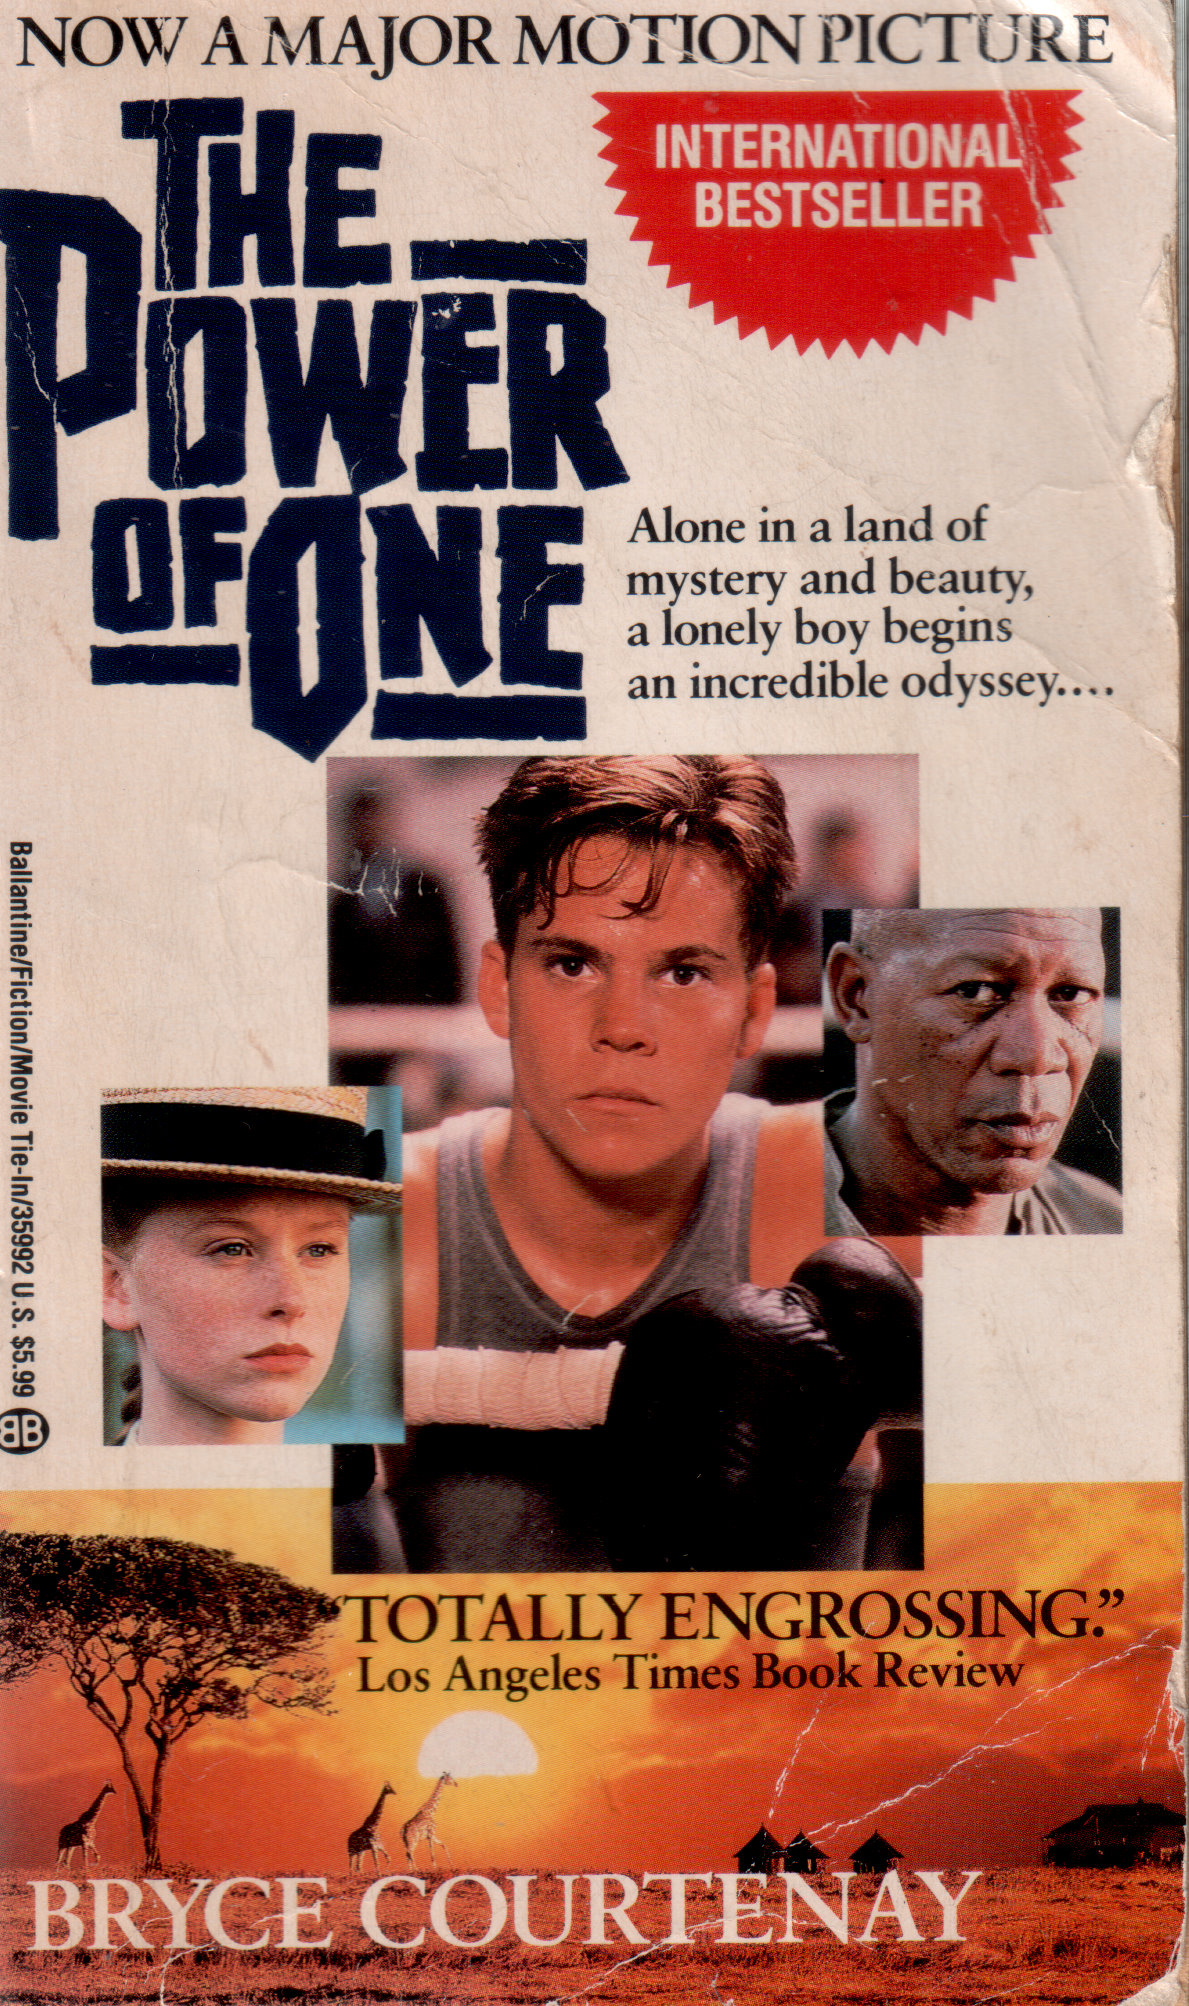 An analysis of the movie the power of one